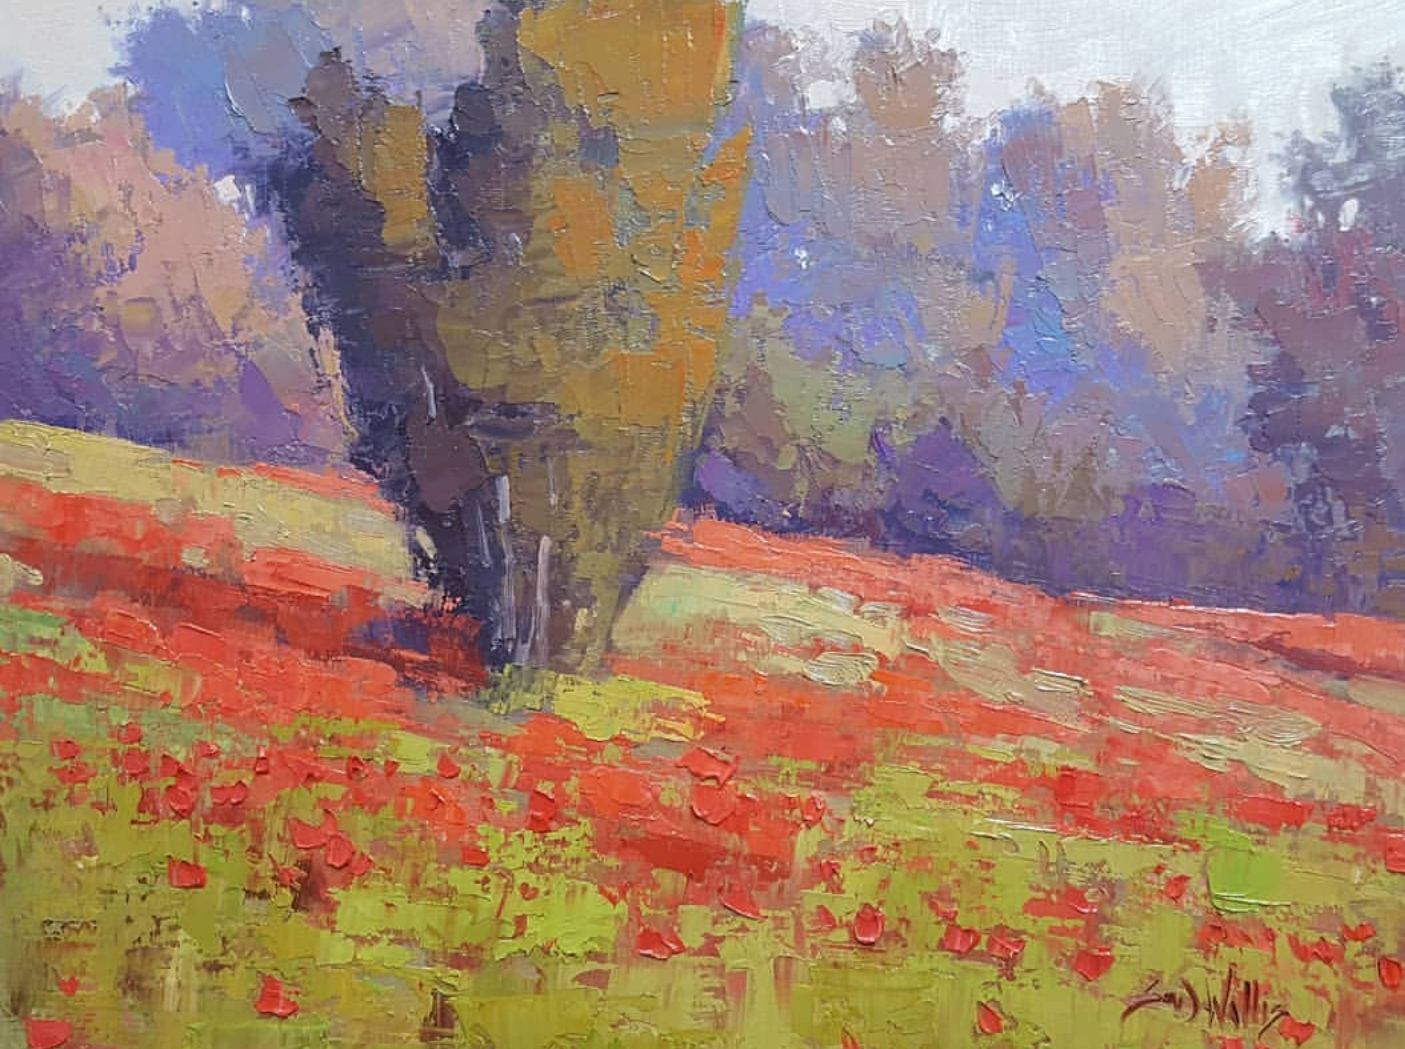 Sean Wallis - Evening Poppies